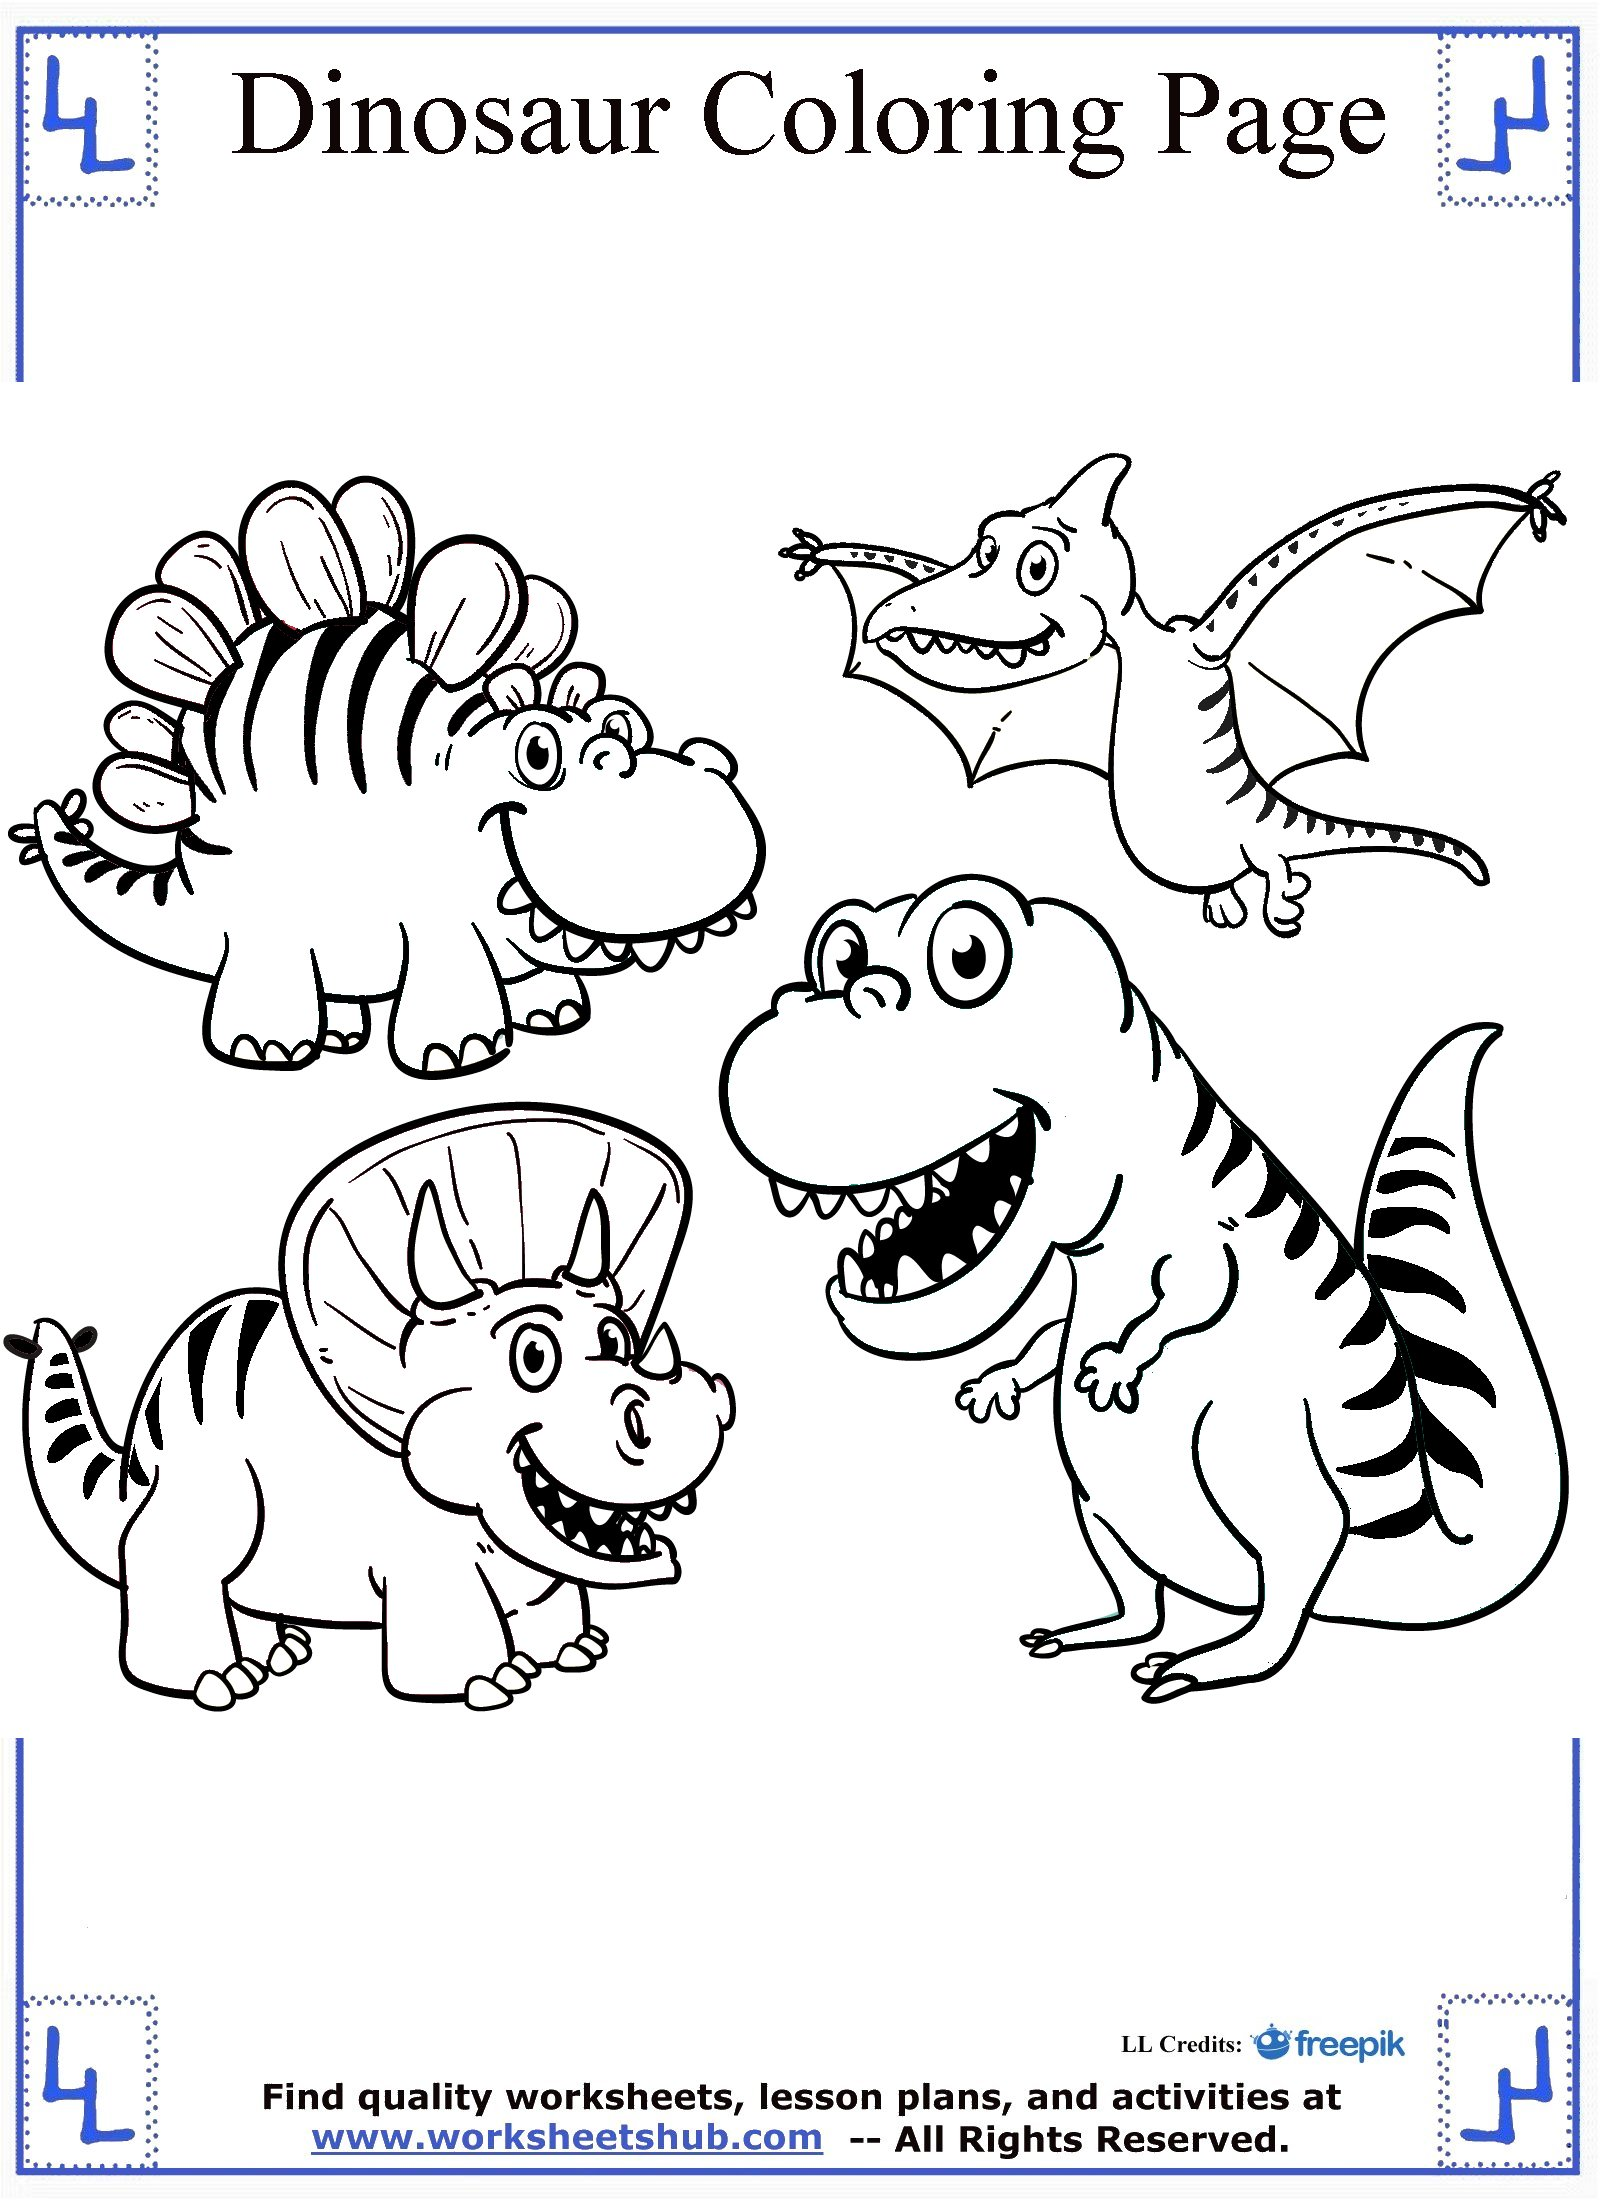 Dinosaur Coloring Pages Pdf | Coloring Pages